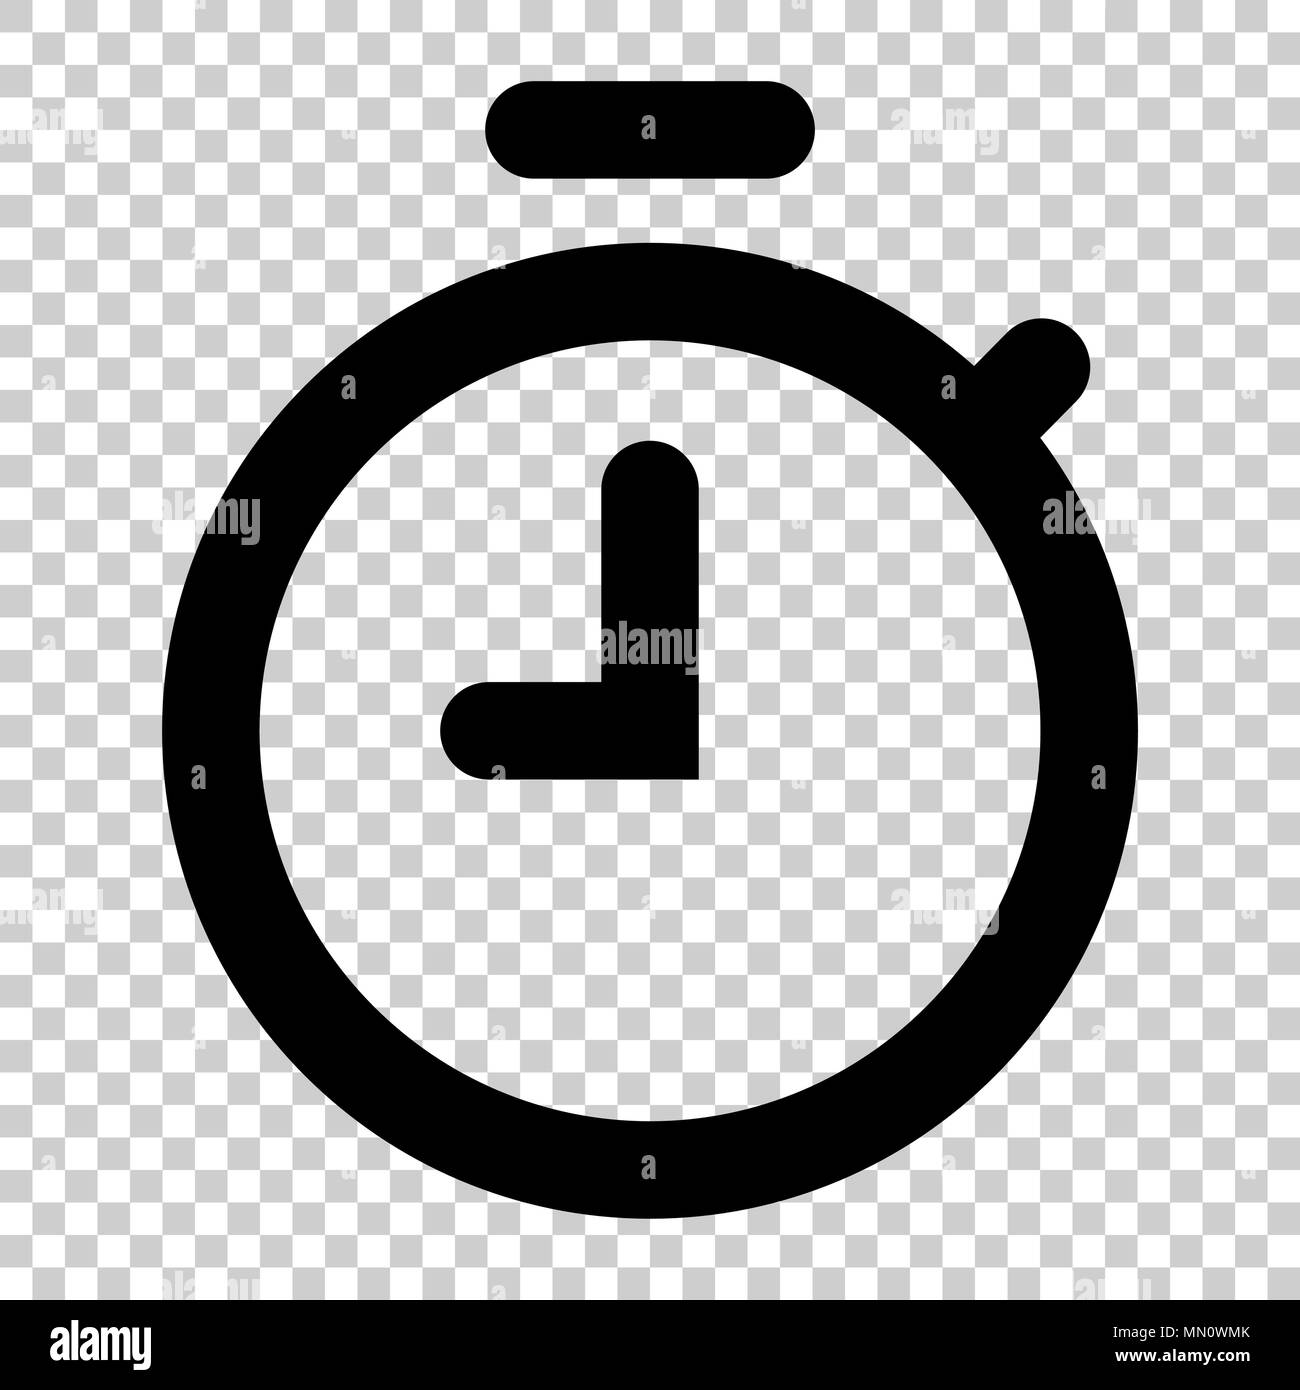 Clock timer icon in flat style  Time alarm illustration on